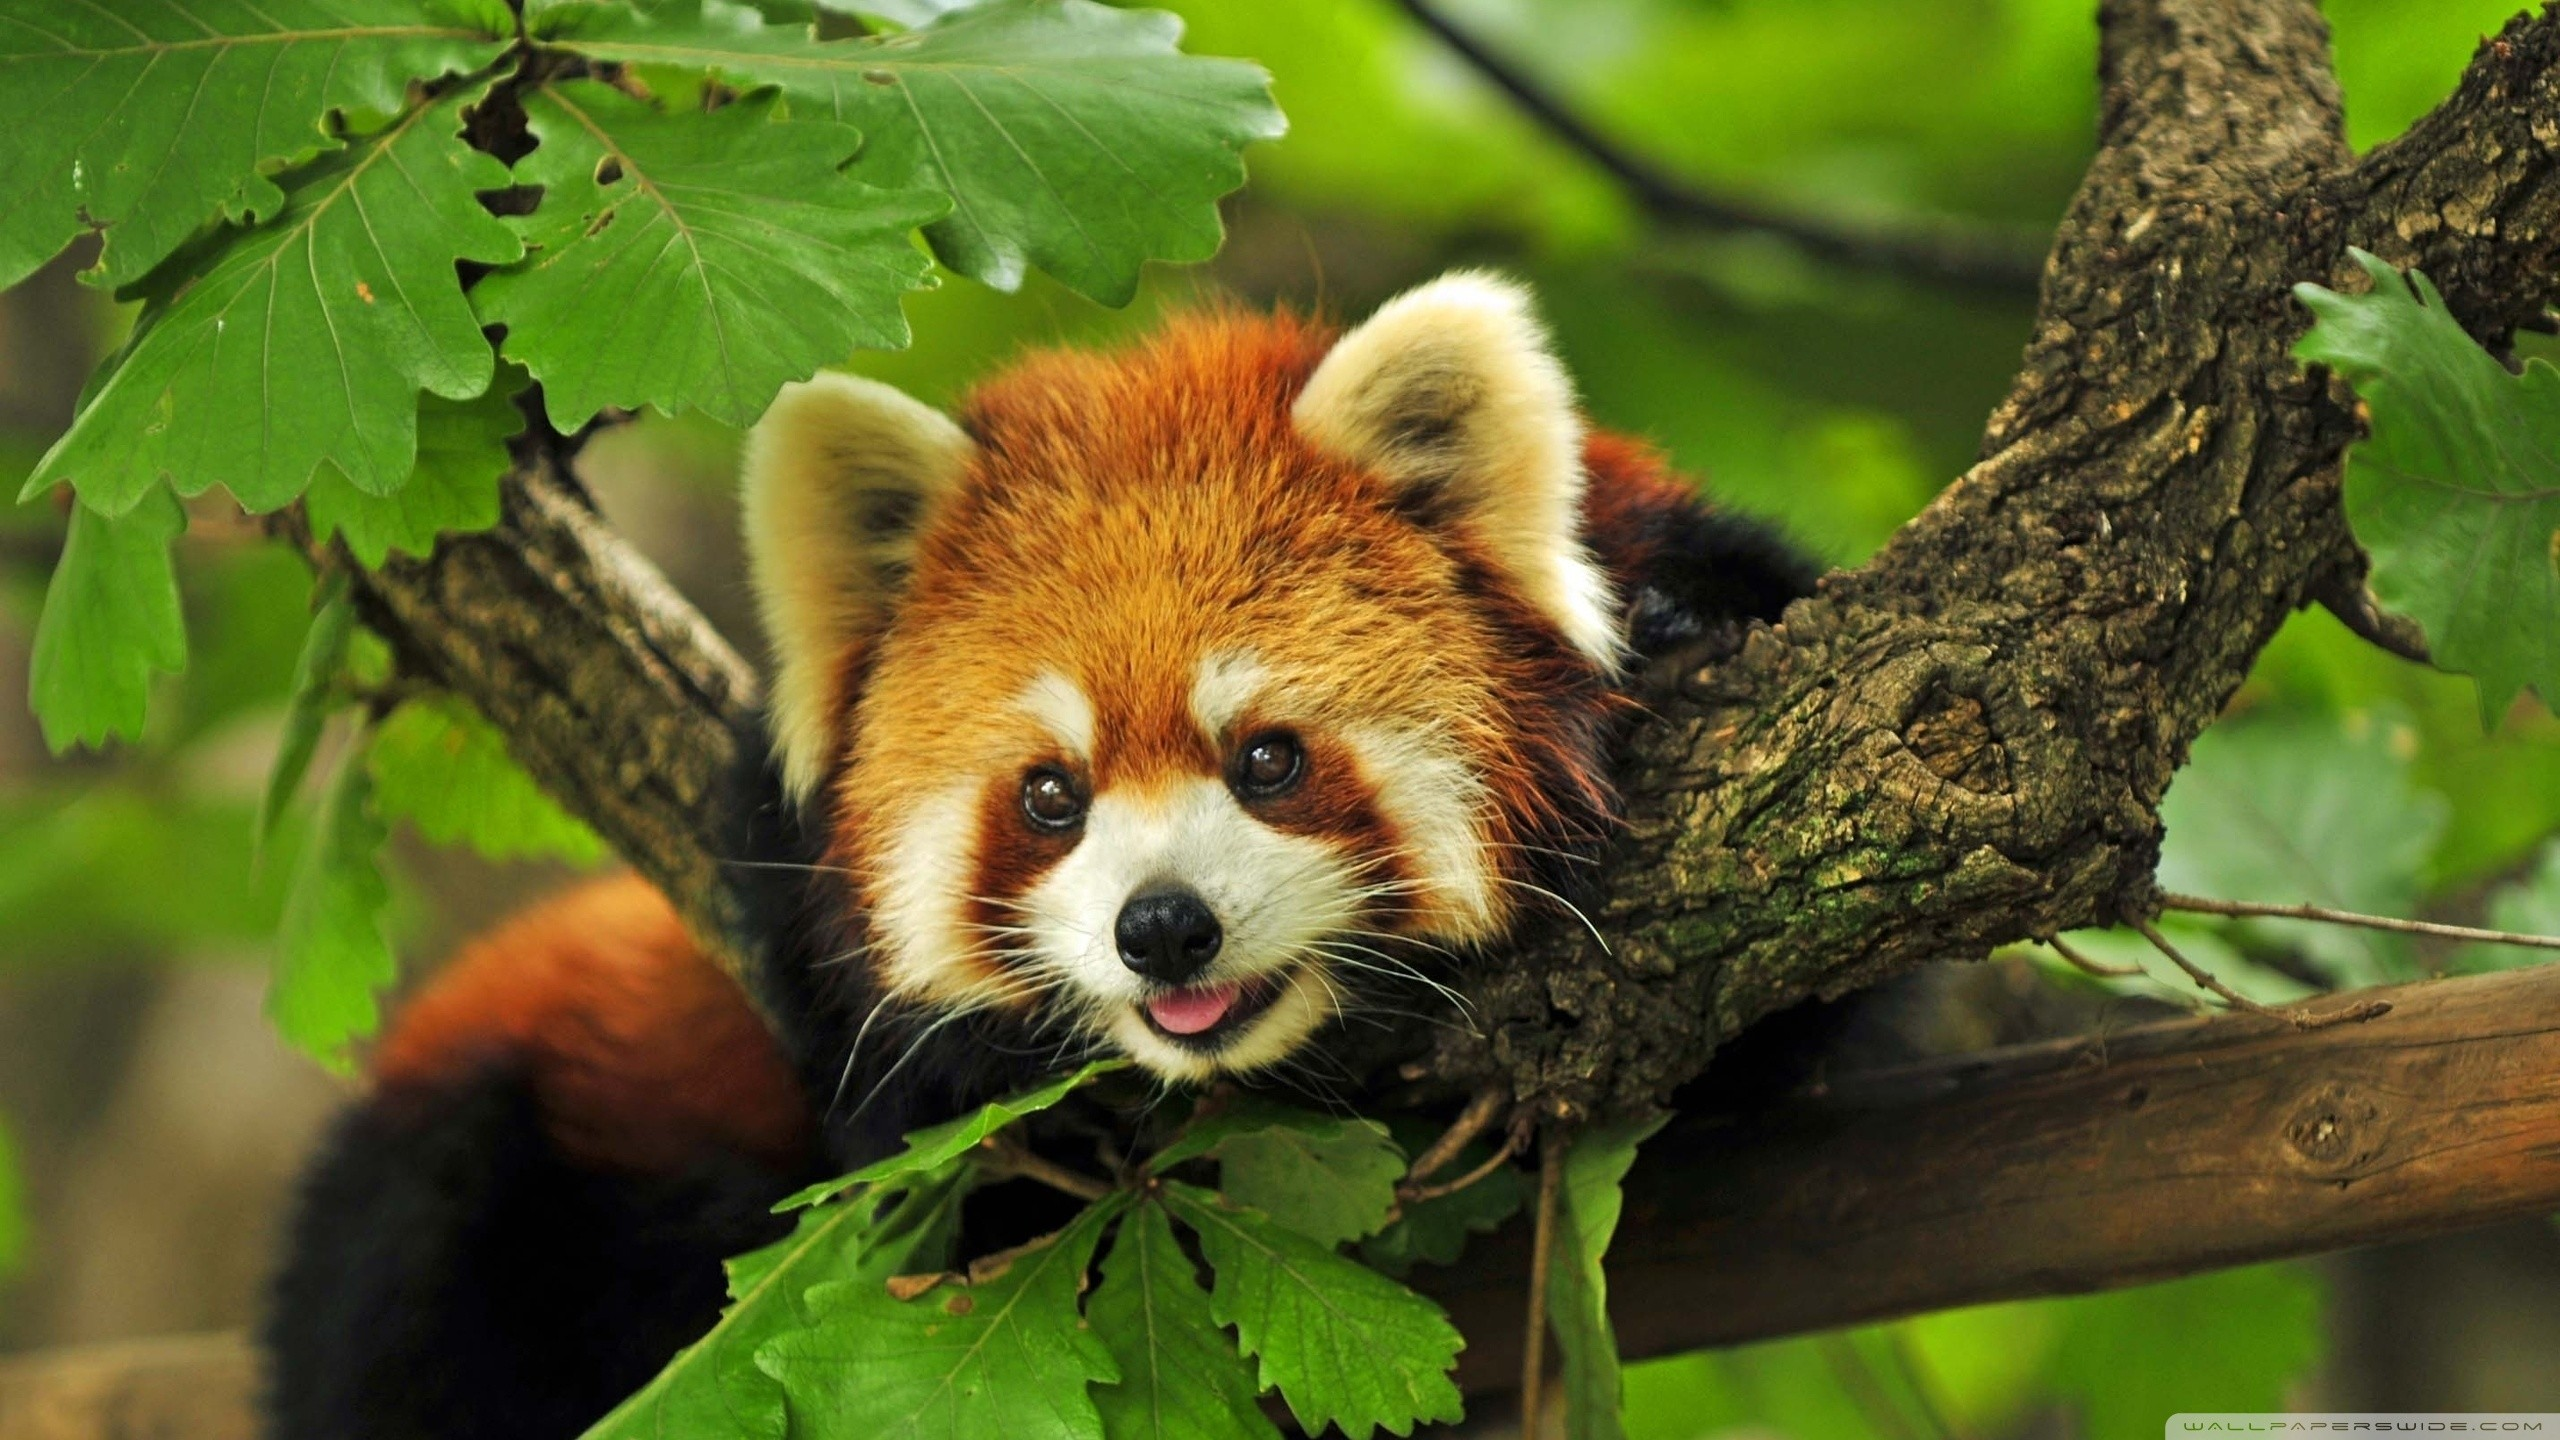 Res: 2560x1440, HD Wallpaper   Background Image ID:508662.  Animal Red Panda